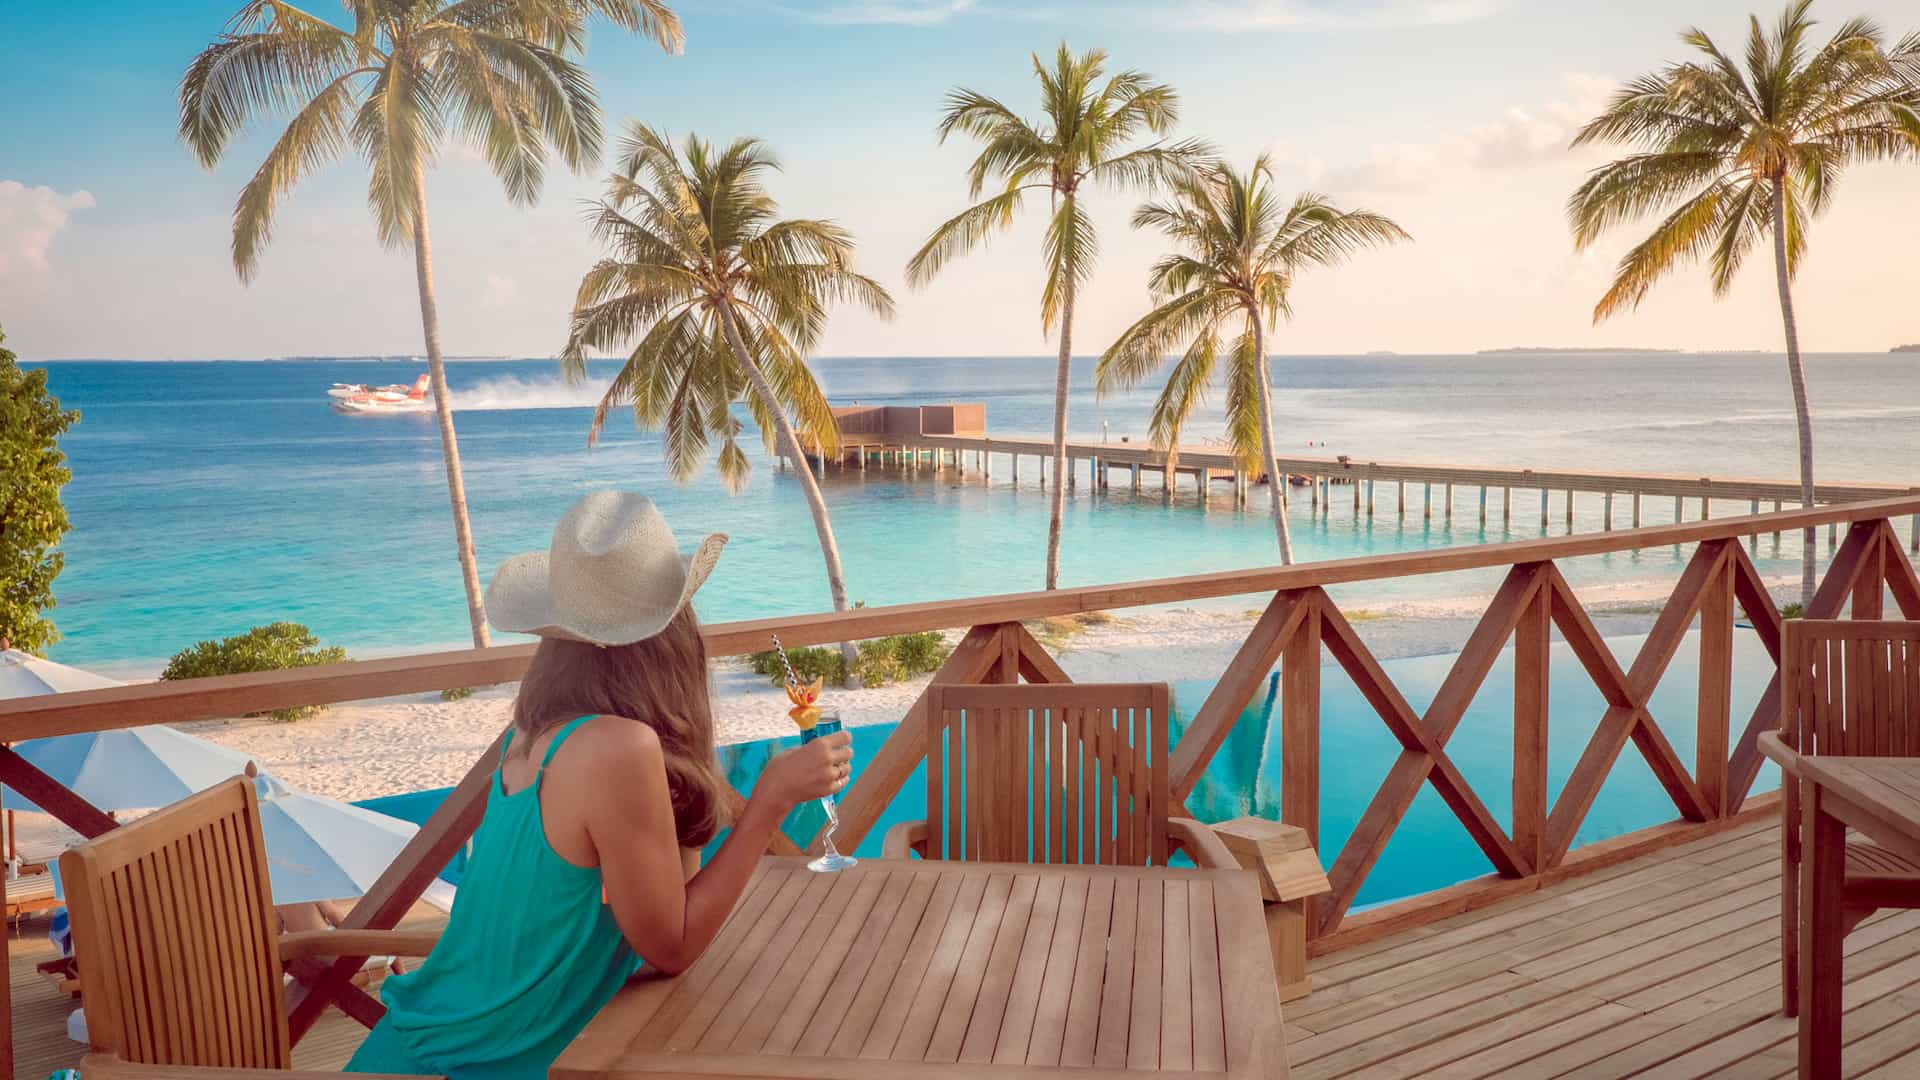 Resort Maldive Reethi Faru Veyo Bar